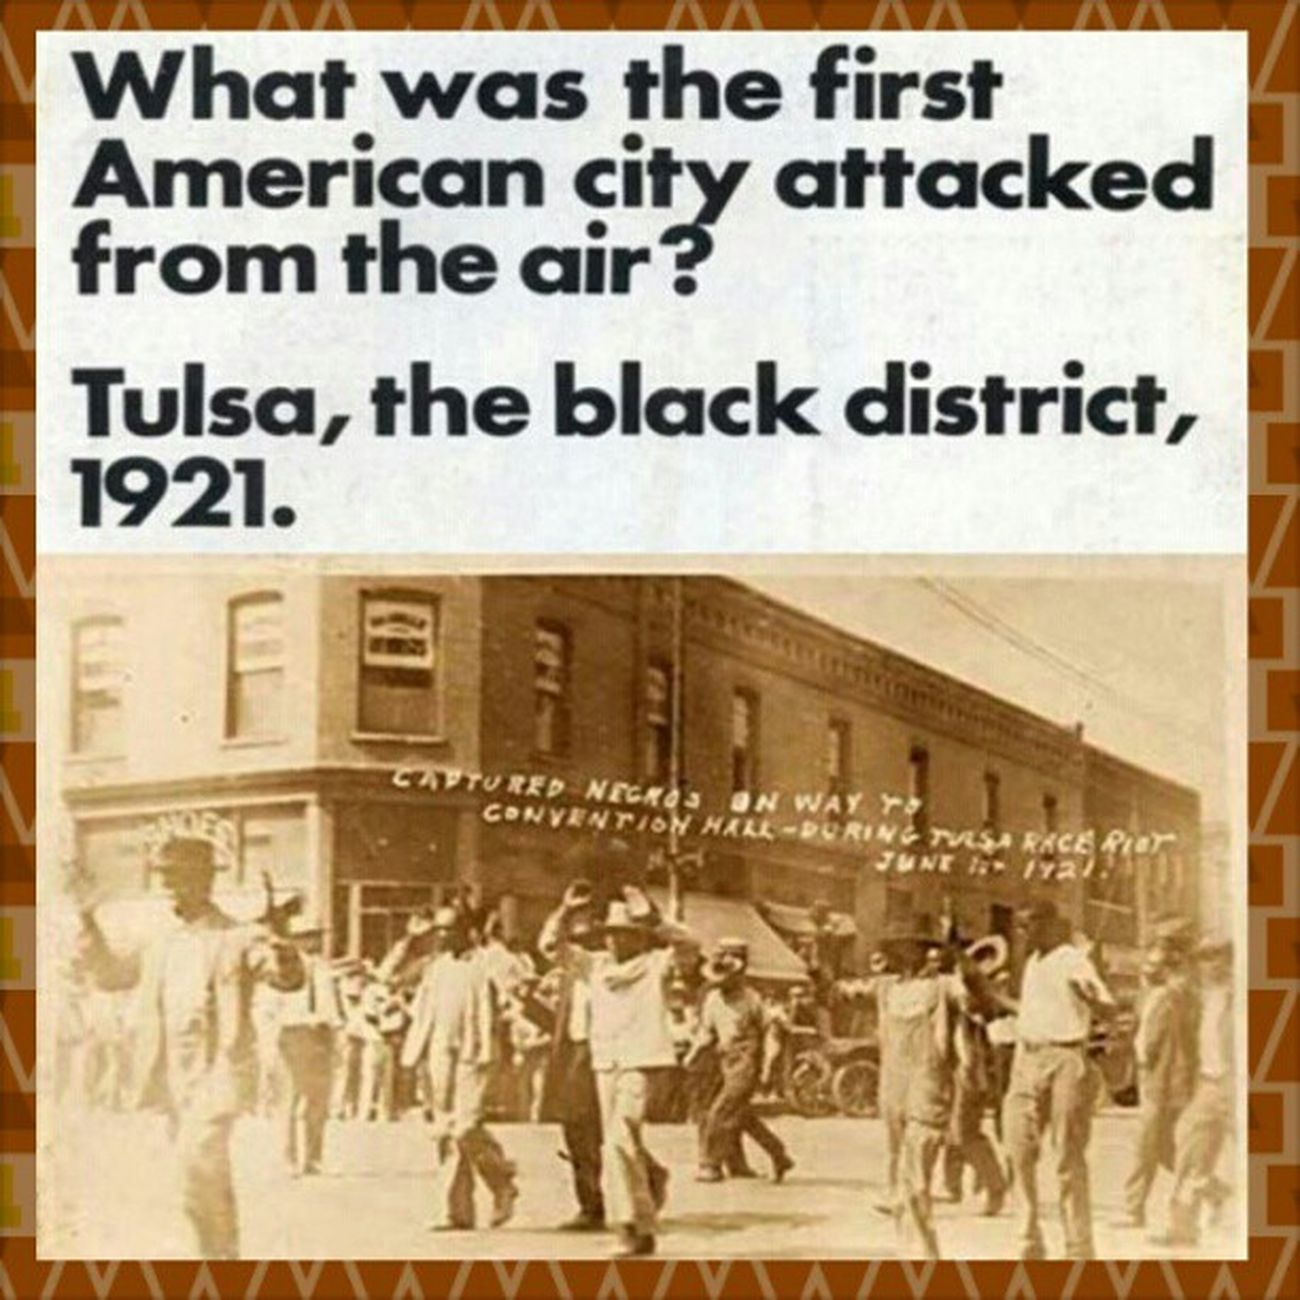 """National Guard troops patrolling the streets armed. Thousands of black people held in a convention center. Hundreds of black dead, with bodies piled like wood. That was not New Orleans, that was Tulsa, Oklahoma, in June 1921. On May 30, 1921 a young black man named Dick Rowland, stumbled into a white woman, while entering an elevator. He was accused of assault, and arrested the next day. Newly rich from oil Tulsa, was a Ku Klux Klan town. Rowland was sentenced to be hanged. The Tulsa Tribune called for a """"Negro lynching tonight."""" The white mob was surprised when they were met by several dozen armed black men, dressed in their World War I uniforms. This led to a racist three day destruction of the black neighborhood of Greenwood. The Red Cross reported 300 mostly dead black people. Greenwood called """"Little Africa,"""" was a relatively wealthy community. White mobs, many deputized, destroyed every house, store, church or school. The mob met resistance from an armed black population. Governor Robertson declared martial law. The National Guard arrived with machine gun mounted trucks, and airplanes hovering over Greenwood. It was the first time an American city was bombed from the air, by the US government. Over 6,000 black people, were round up and held in the convention center and fairgrounds, as long as eight days. The homeless were shuttled into a tent city, where typhoid and malnutrition took over. Blacks were allowed out of the convention center, with a tag, with an employers name. Thosands fled the city. Attempts to turn Greenwood into an industrial zone were unsuccessful. For several years, it was deprived of paved streets, running water, and garbage collection. See: Tulsa Reparations Coalition and thank you to Internationalist Group for presenting this story in your newspaper. Blackhistorymonth Blackhistory"""